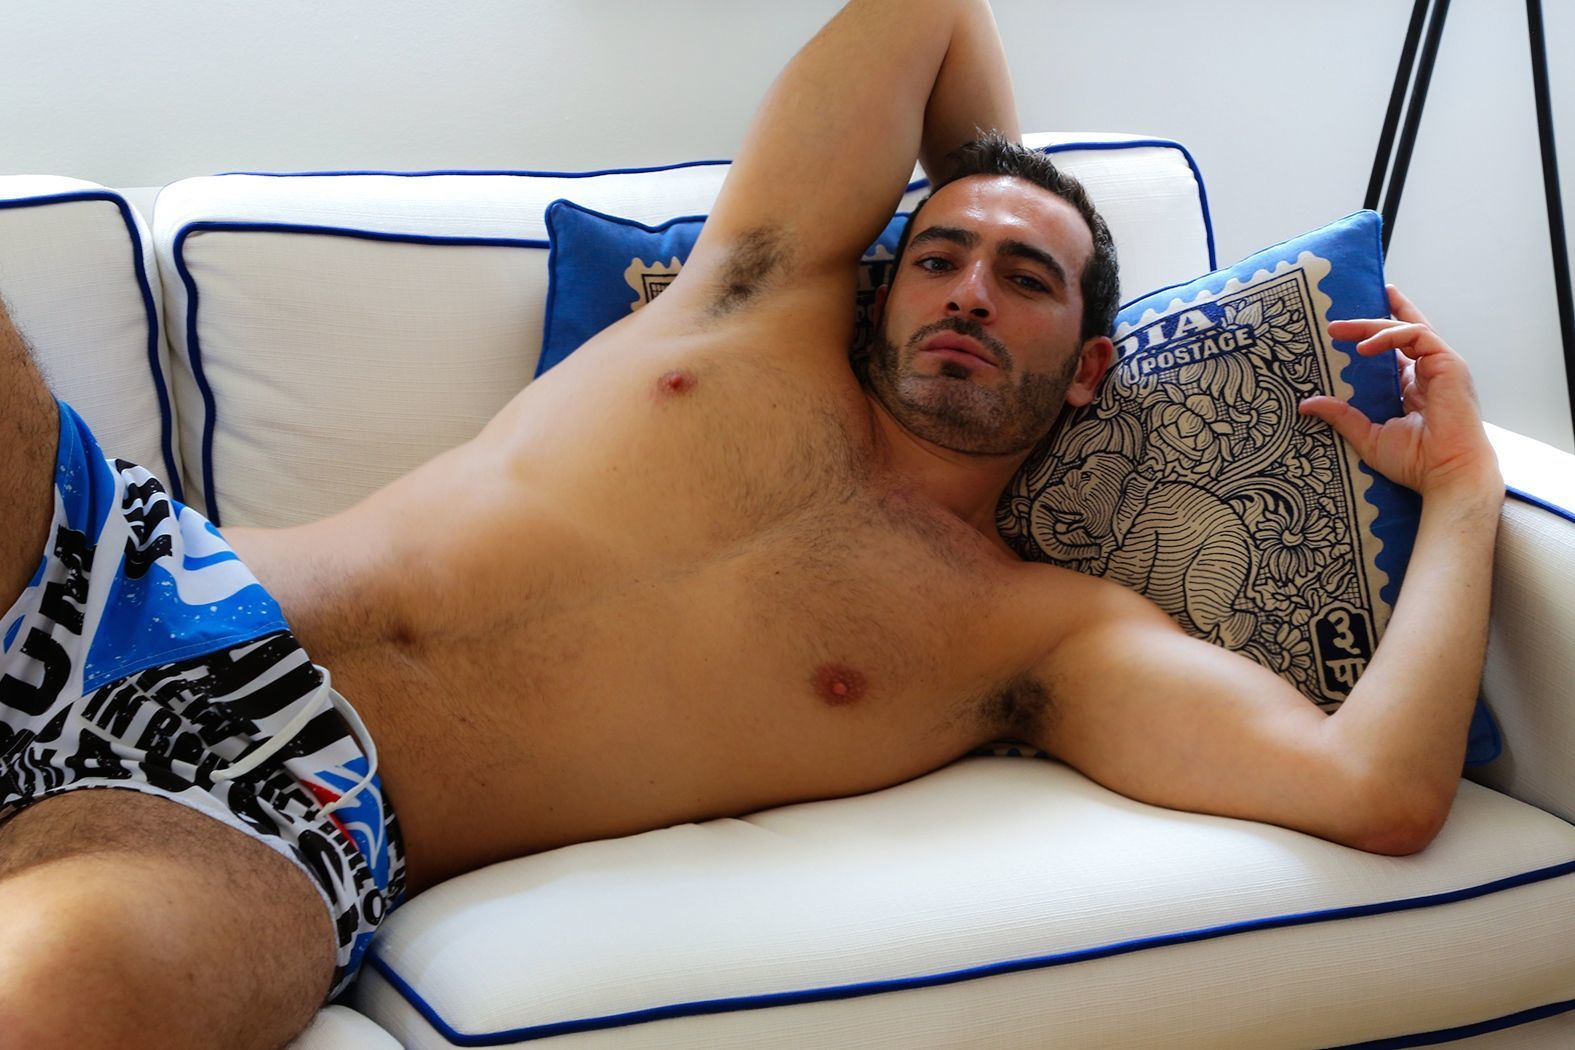 french gay video escort annonce lille